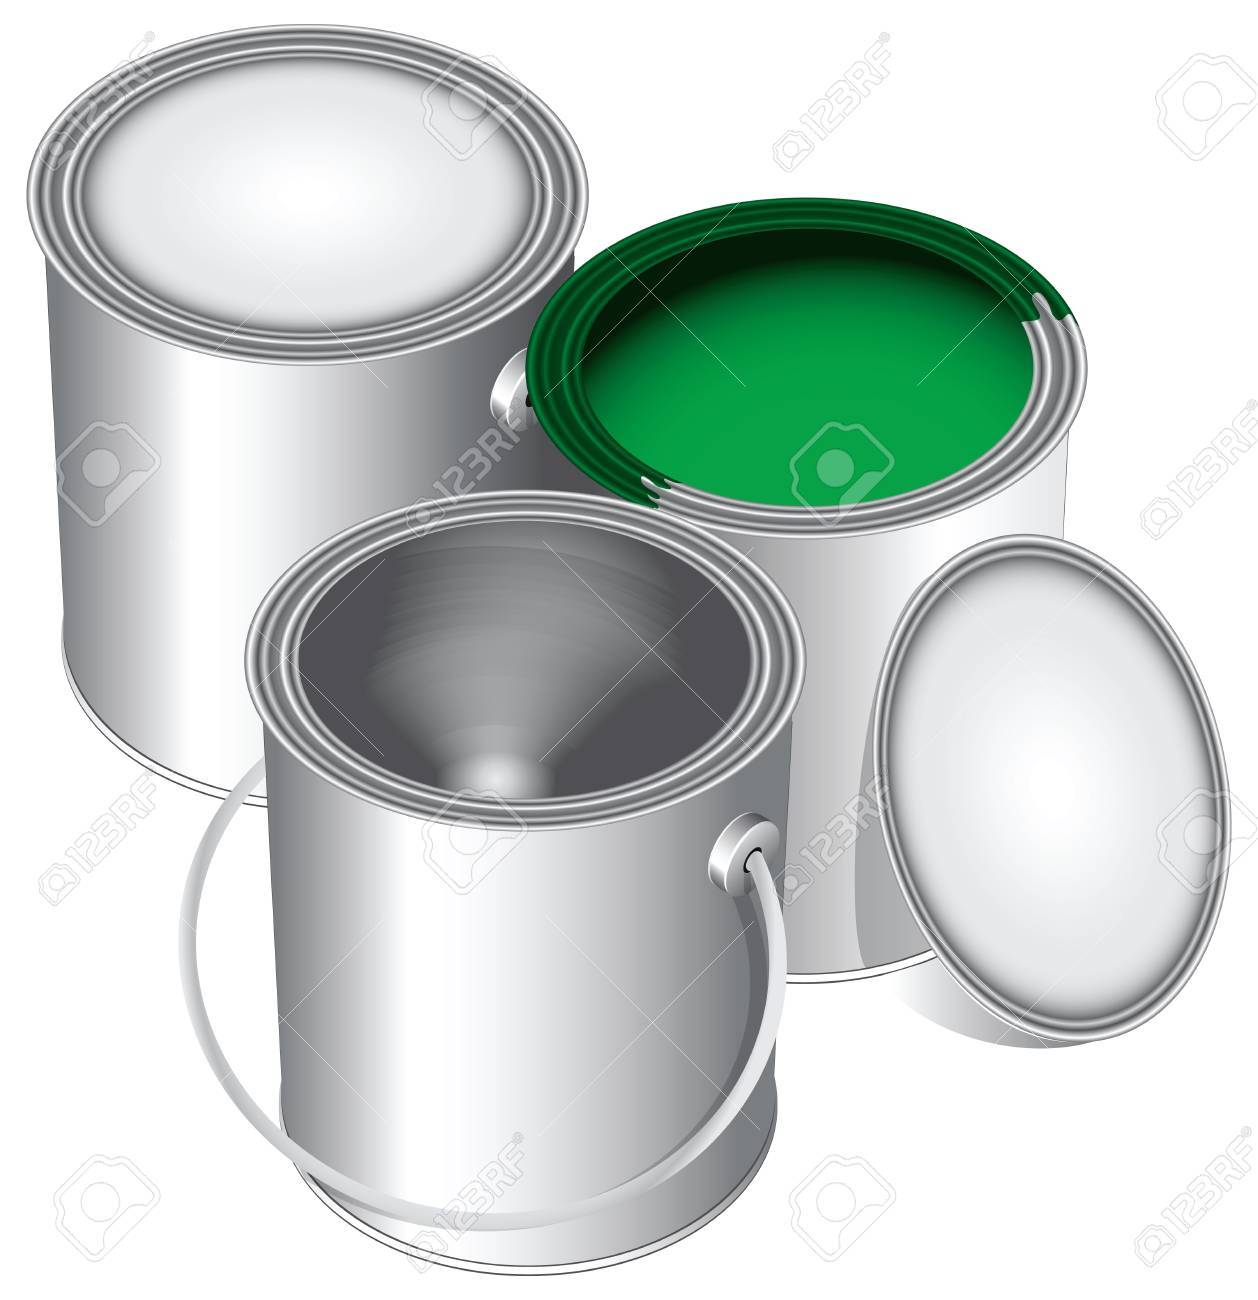 Three versions of standard cans of paint, closed, open and empty with green paint. Stock Vector - 13903538